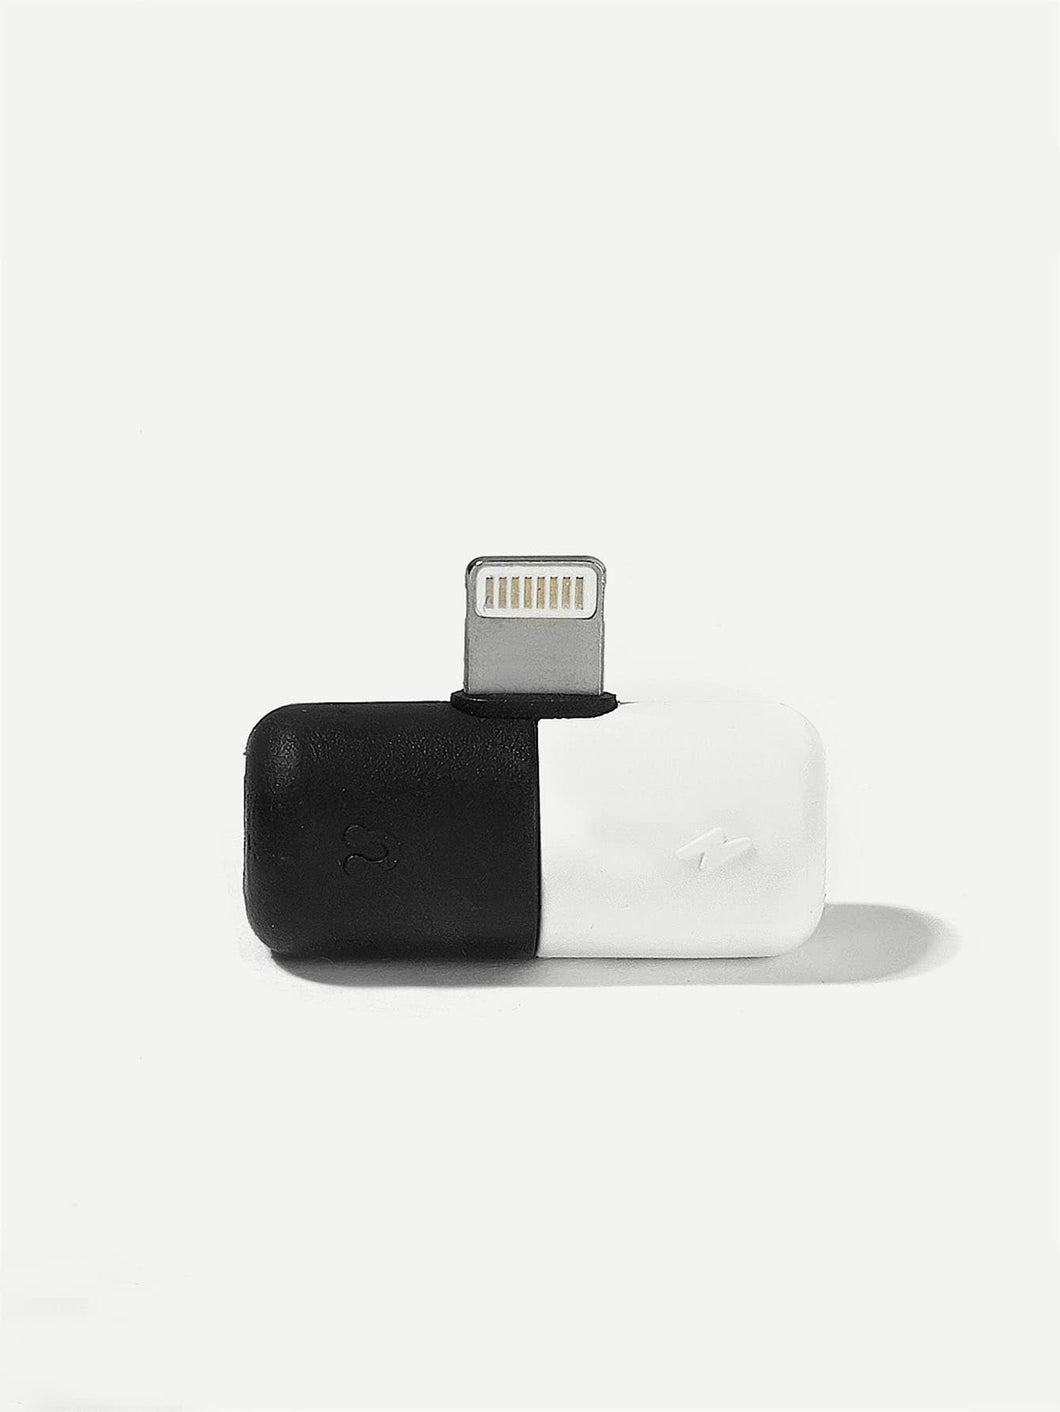 iPhone 2 In 1 USB Converter